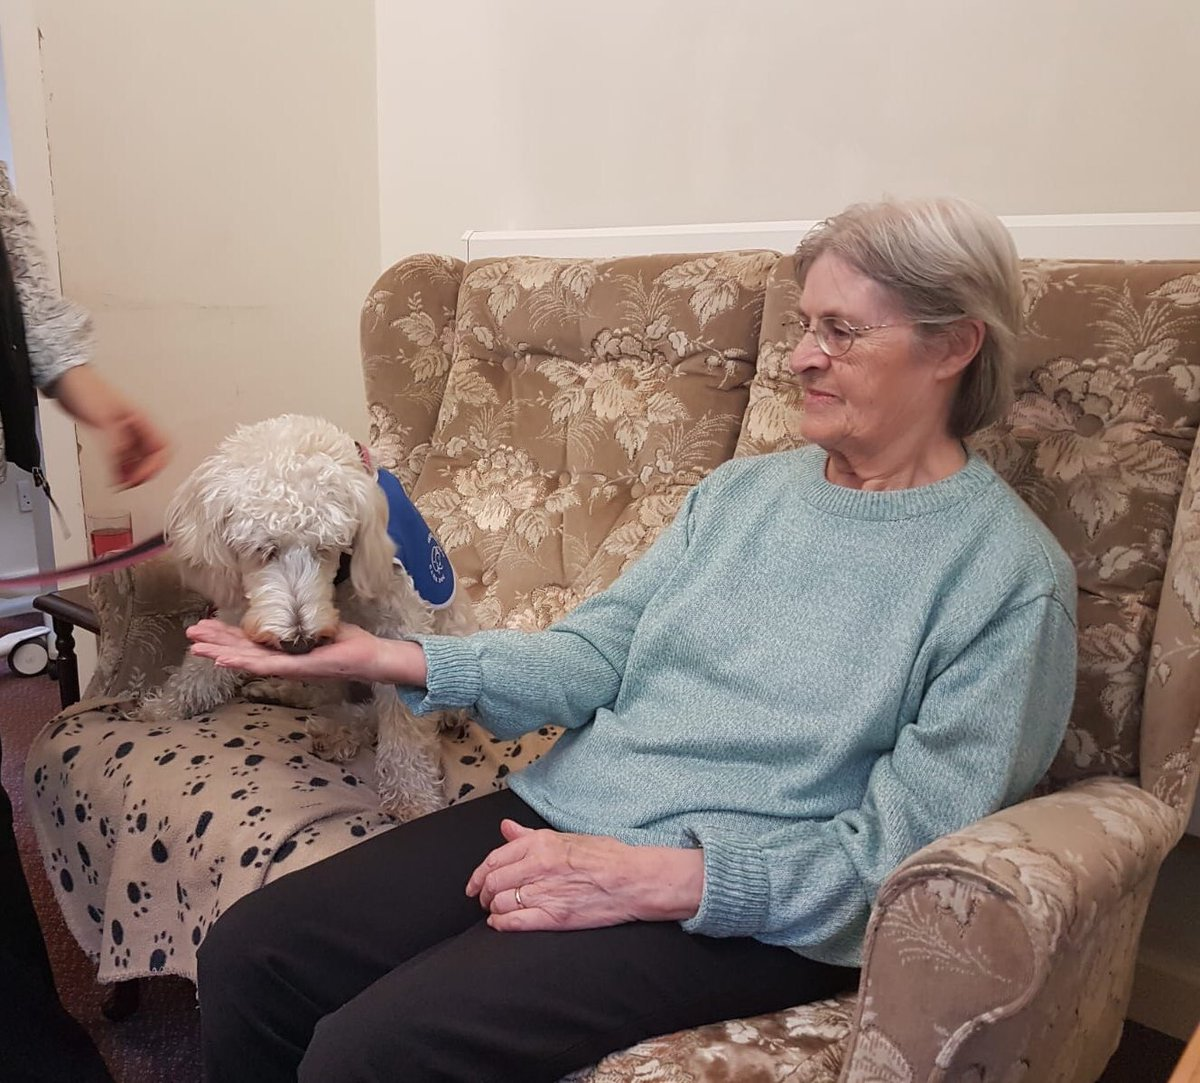 test Twitter Media - Daisy and Miss Parkes had their first visit today at Elizabeth House Residential Care home. Daisy is going to offer some regular support to the residents there. She certainly took a shine to Maureen. @willowsvets @Myhappydoguk @canineconcern1 @CanineConcern https://t.co/TMqwpptdOD